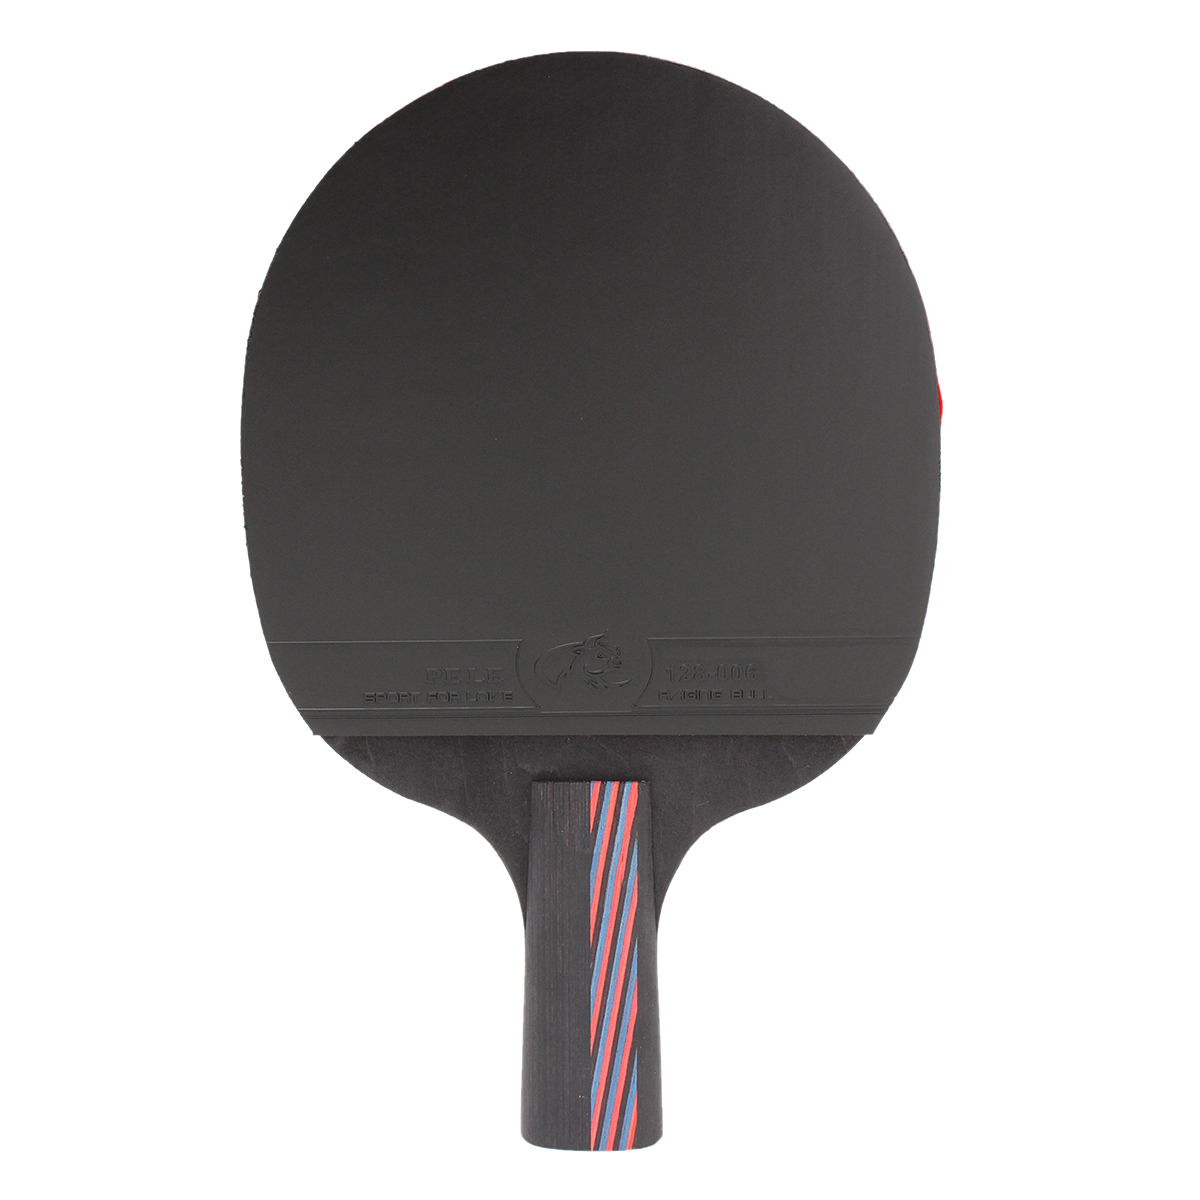 Carbon Fiber Double Sided Ping Pong Table Tennis Racket Rubber Paddle Bat Long Short Handle